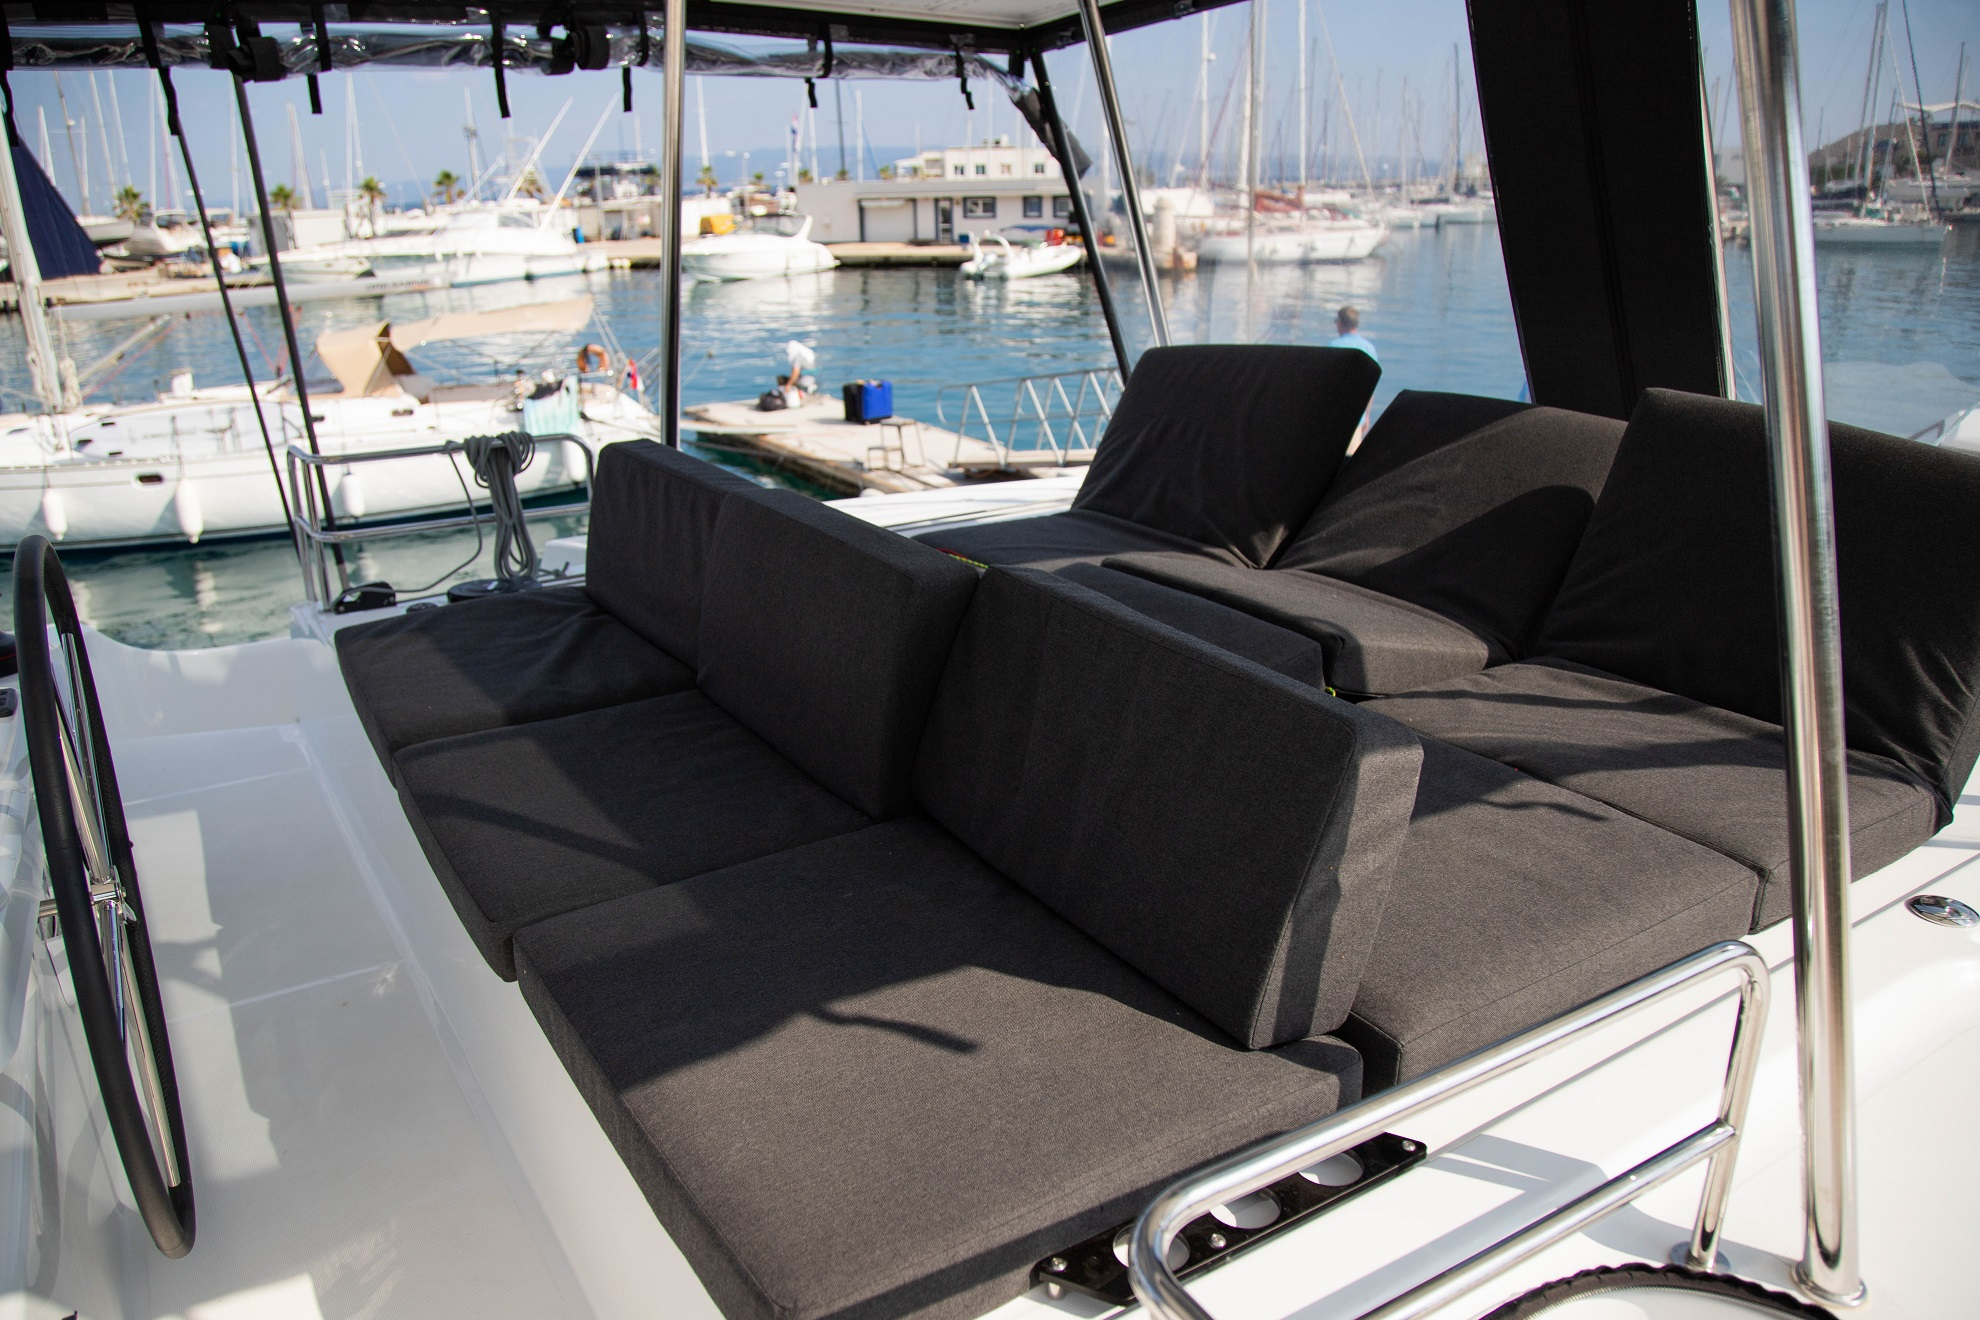 Lagoon 50 LUX elegance (2019) equipped with aircon (TWIN JOY)  - 15